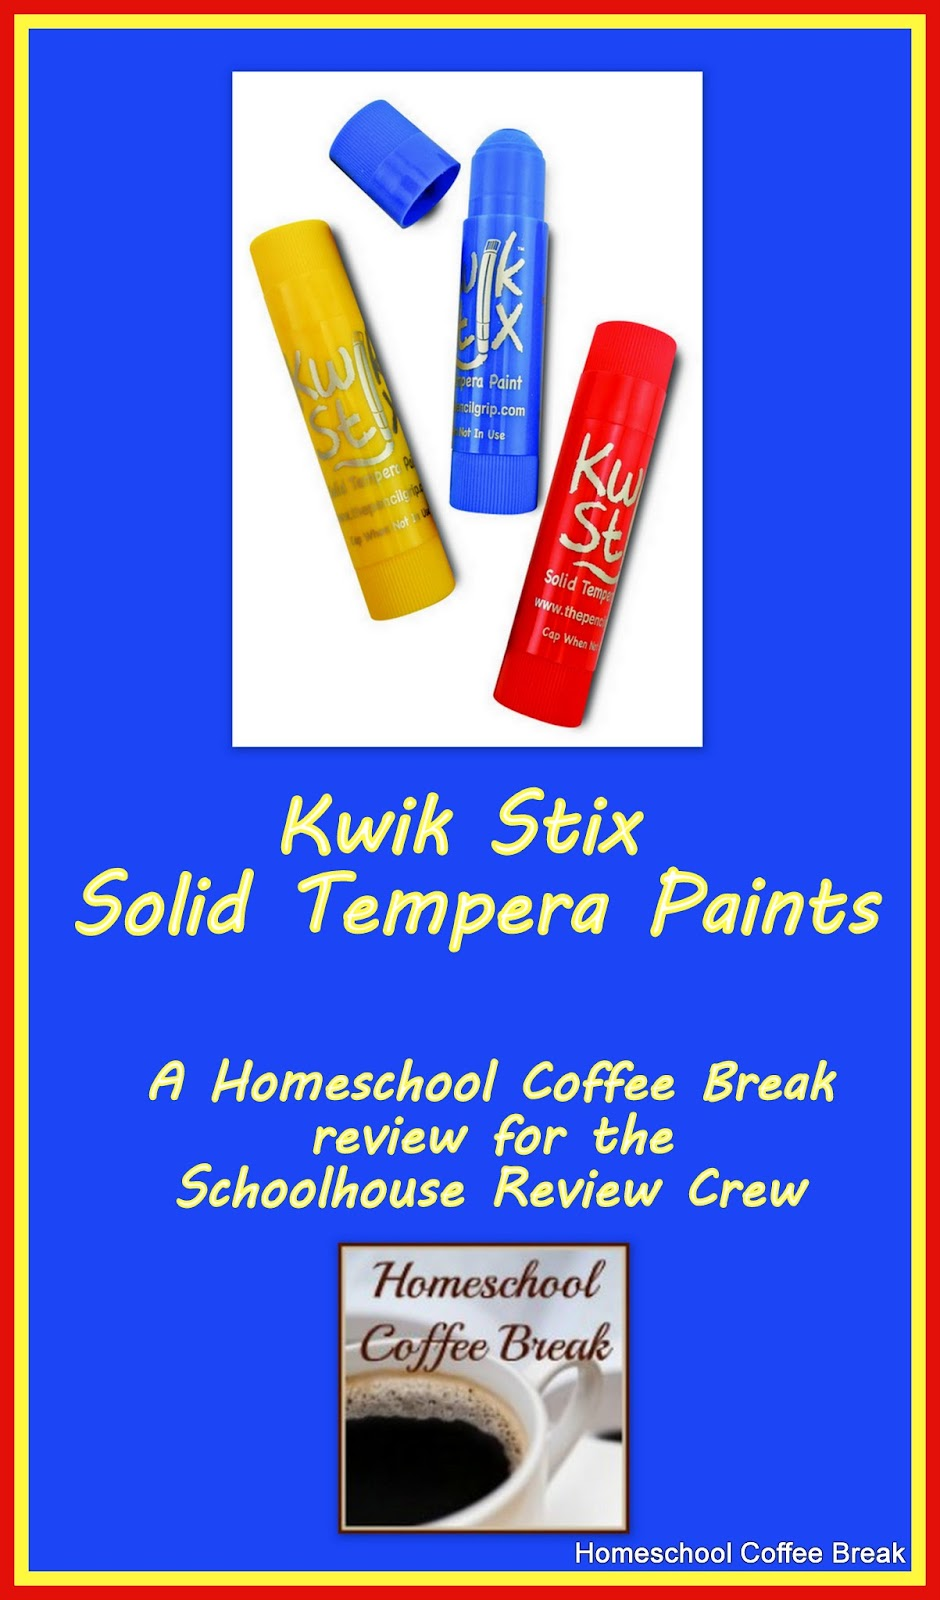 Kwik Stix review on Homeschool Coffee Break @ kympossibleblog.blogspot.com